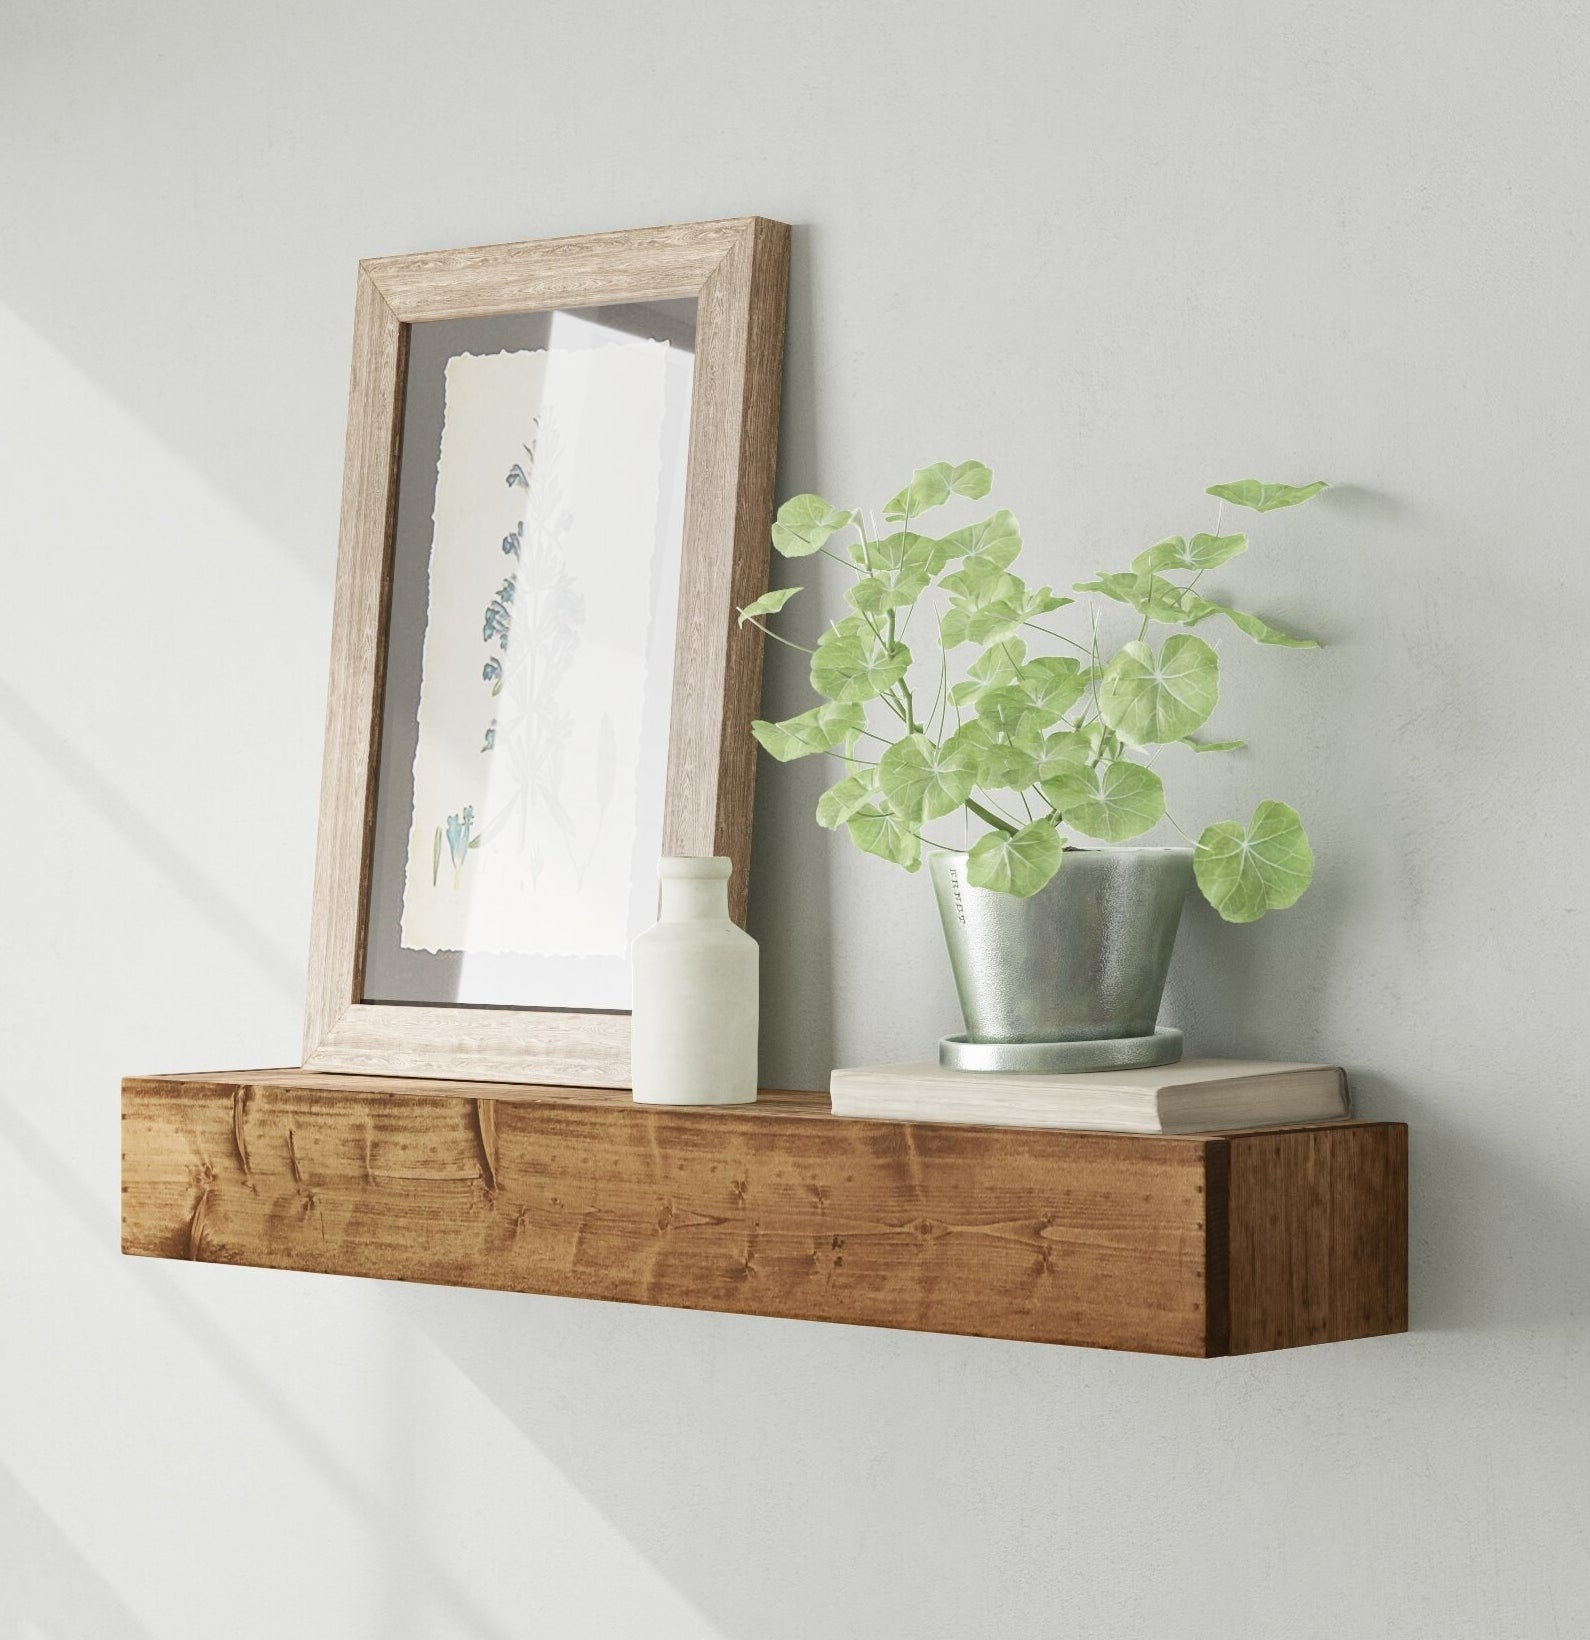 The shelf with a framed photo and plant on top